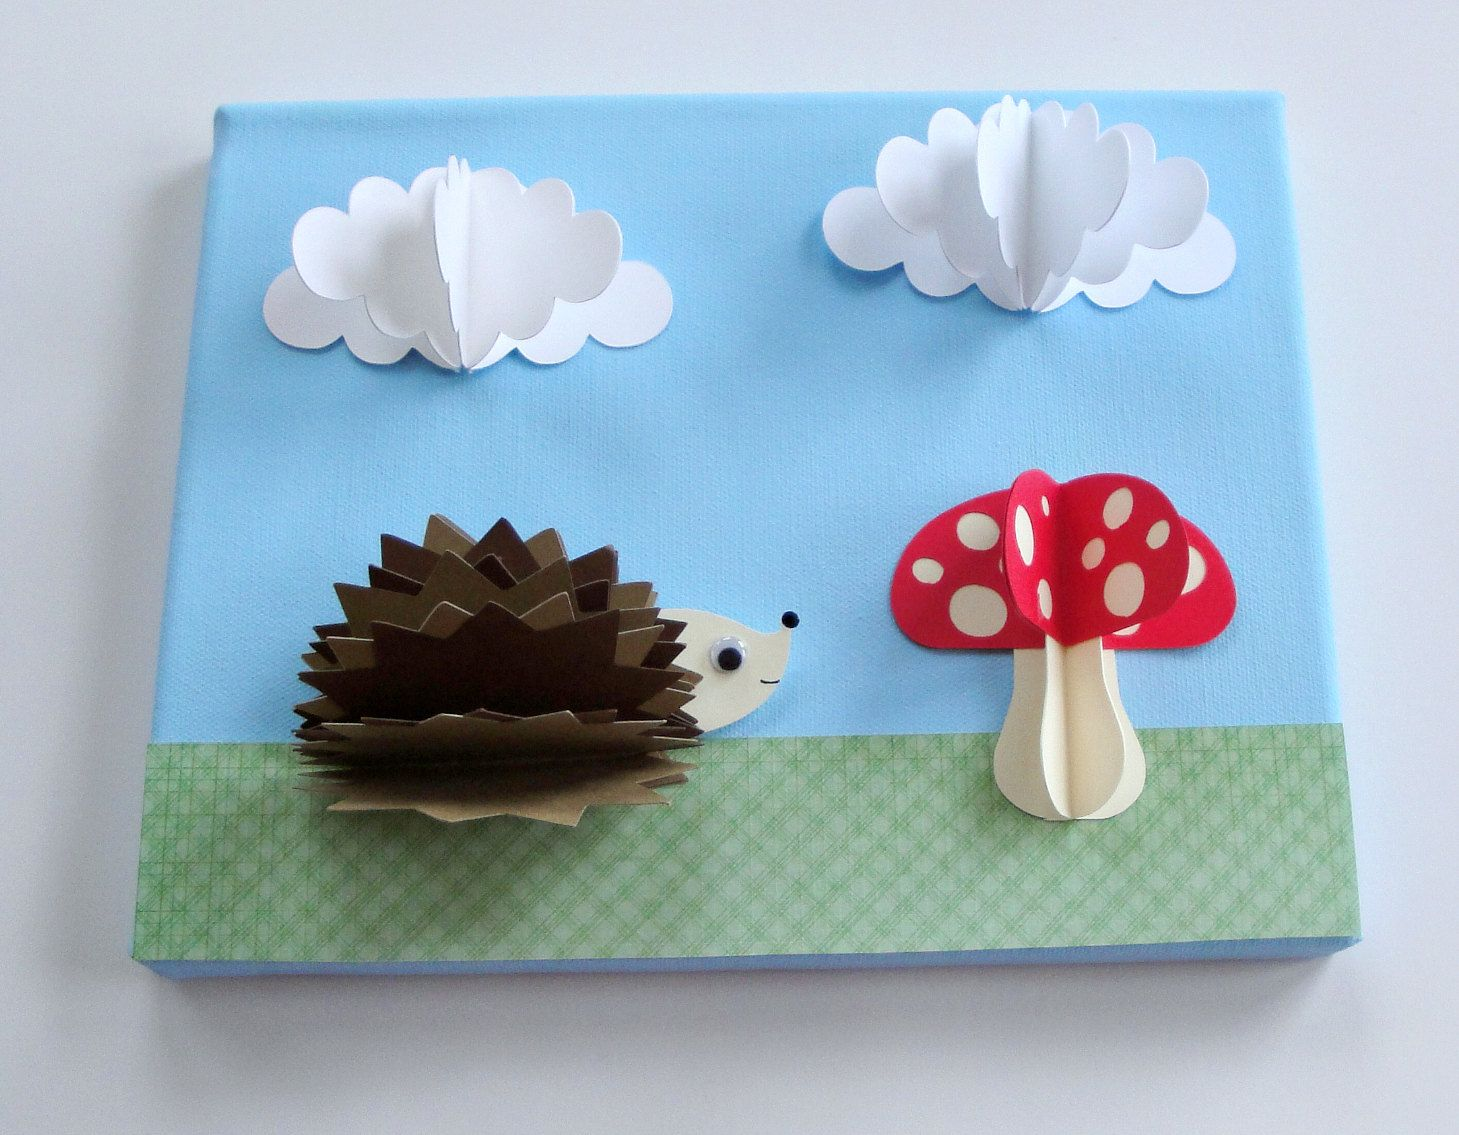 Amazing 3d Craft Ideas For Kids Part - 5: Original Hedgehog And Mushroom 3D Paper Wall Art On 8 X 10 Canvas (Not A